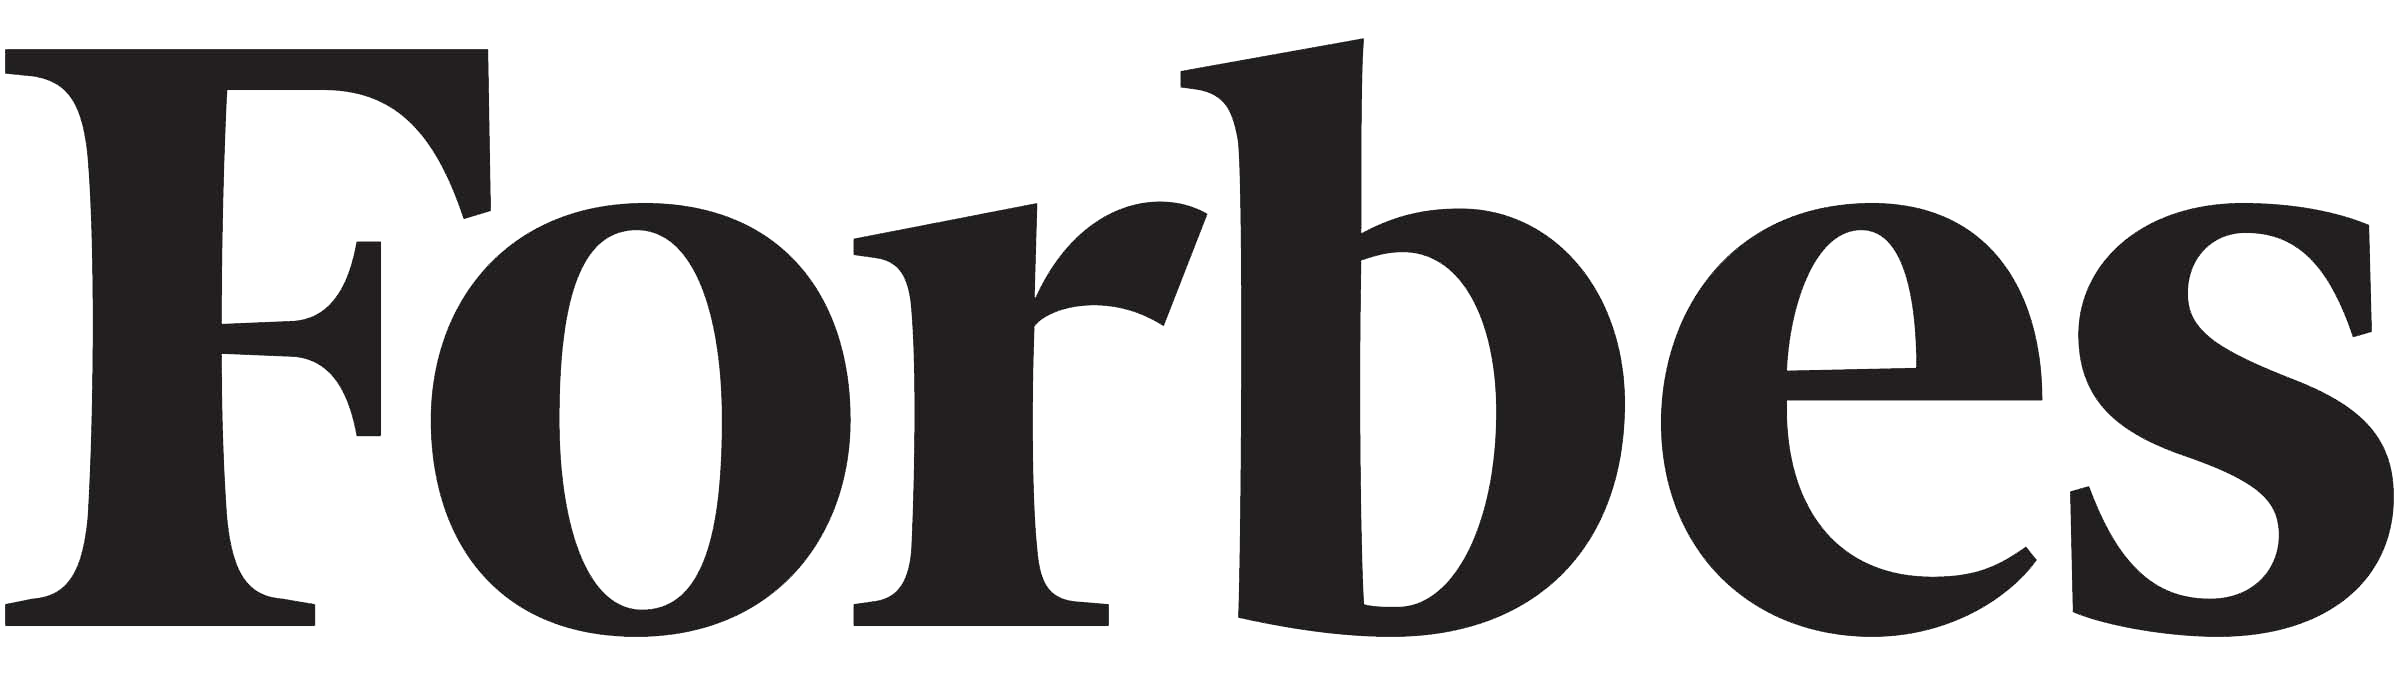 logo - forbes.png